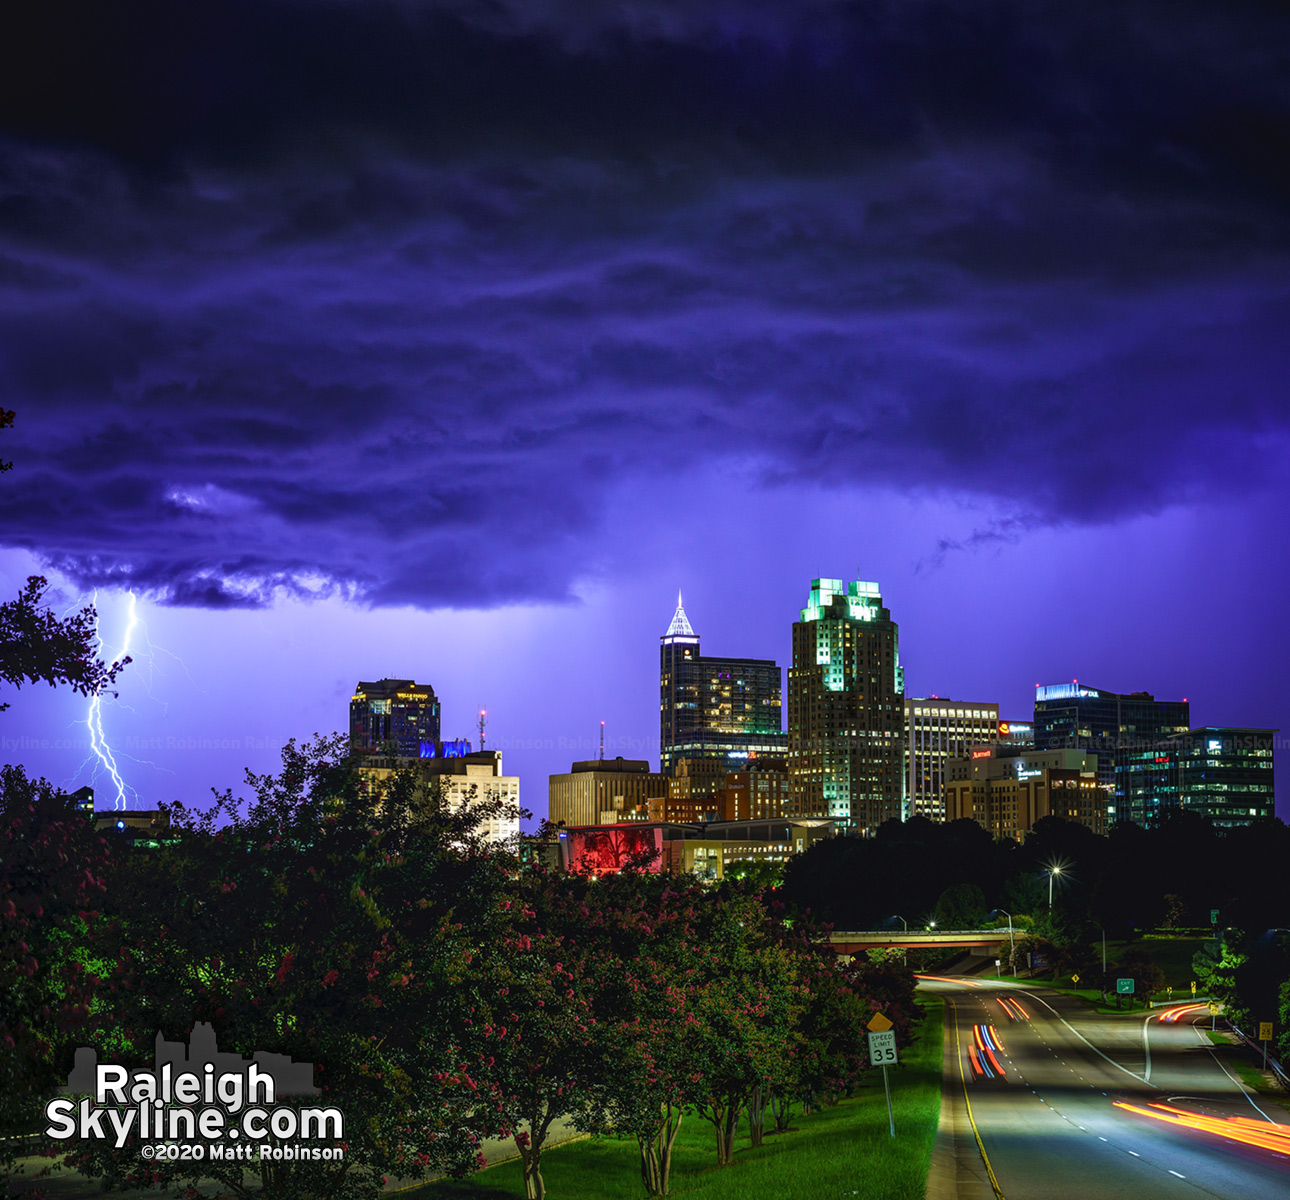 Lightning from a thunderstorm rolling past Raleigh. Downtown stayed dry. ⚡